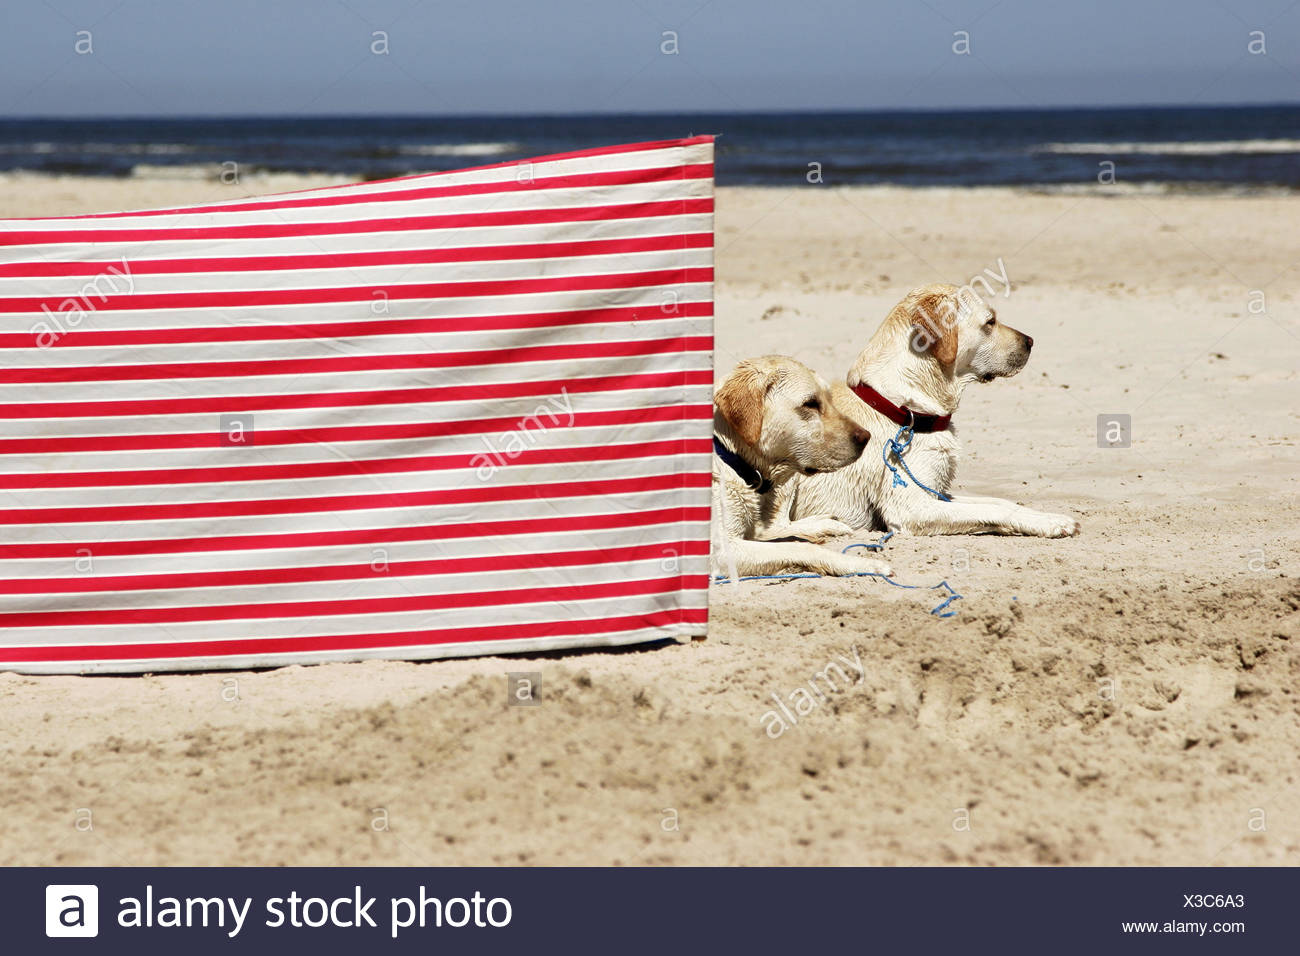 Beach, dogs, Retriever, lies, windbreak, red-know-striped, animals, two, pets, religiously, obedience, allows, dog-beach, sandy beach, sea, heavens, vacation, cloudless, human-empty, recuperation, strips, roved, red-knows, - Stock Image